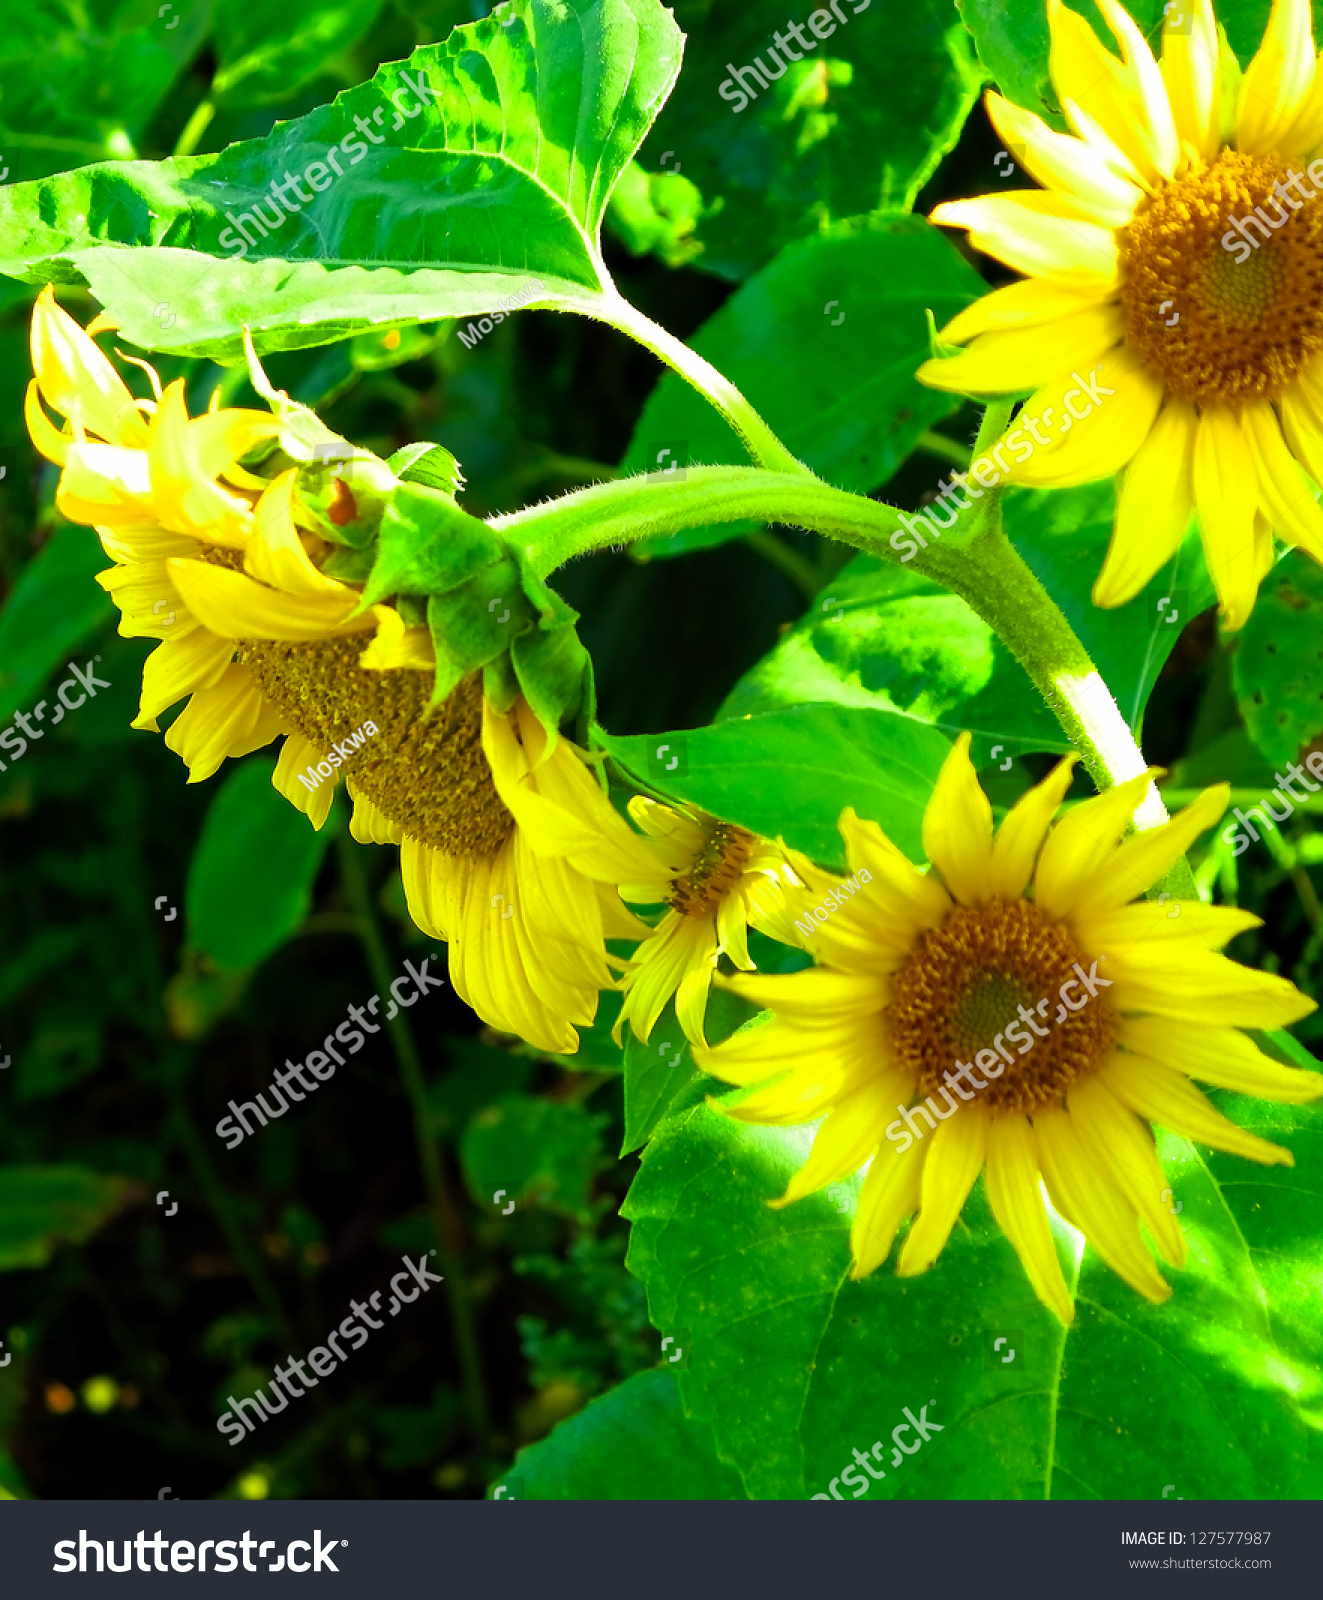 Beautiful Sunflowers In A Garden Stock Photo 127577987